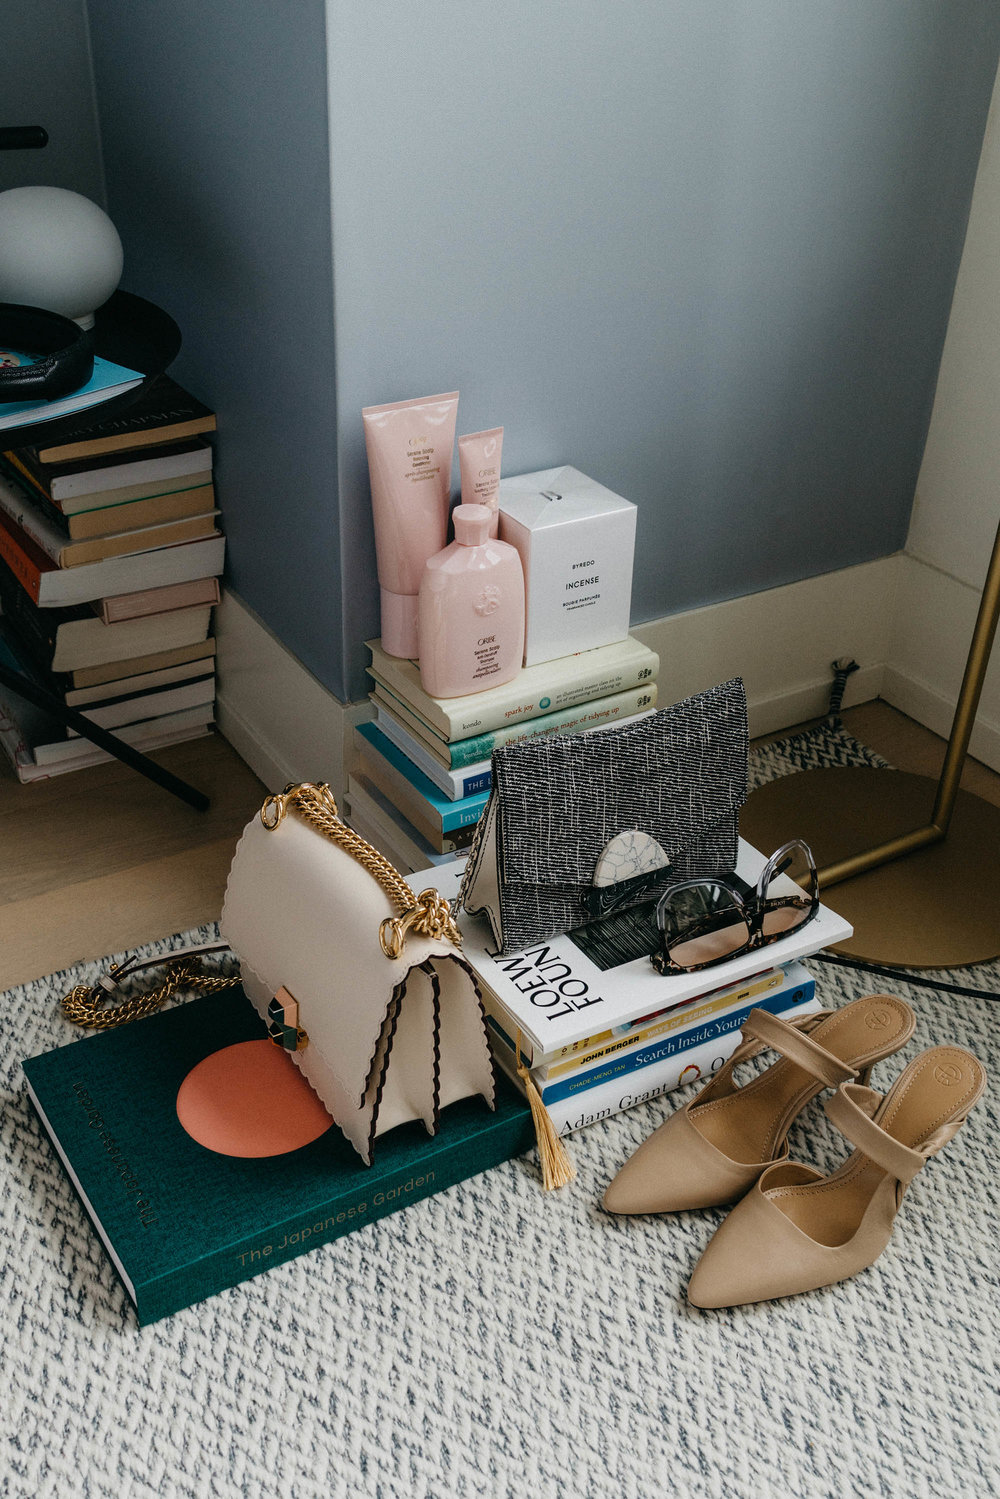 Oribe Haircare ,  Byredo Candle ,  Proenza Schouler Bag , Loewe Sunglasses,  Fendi Bag ,  The Row Shoes ,  The Japanese Garden Book